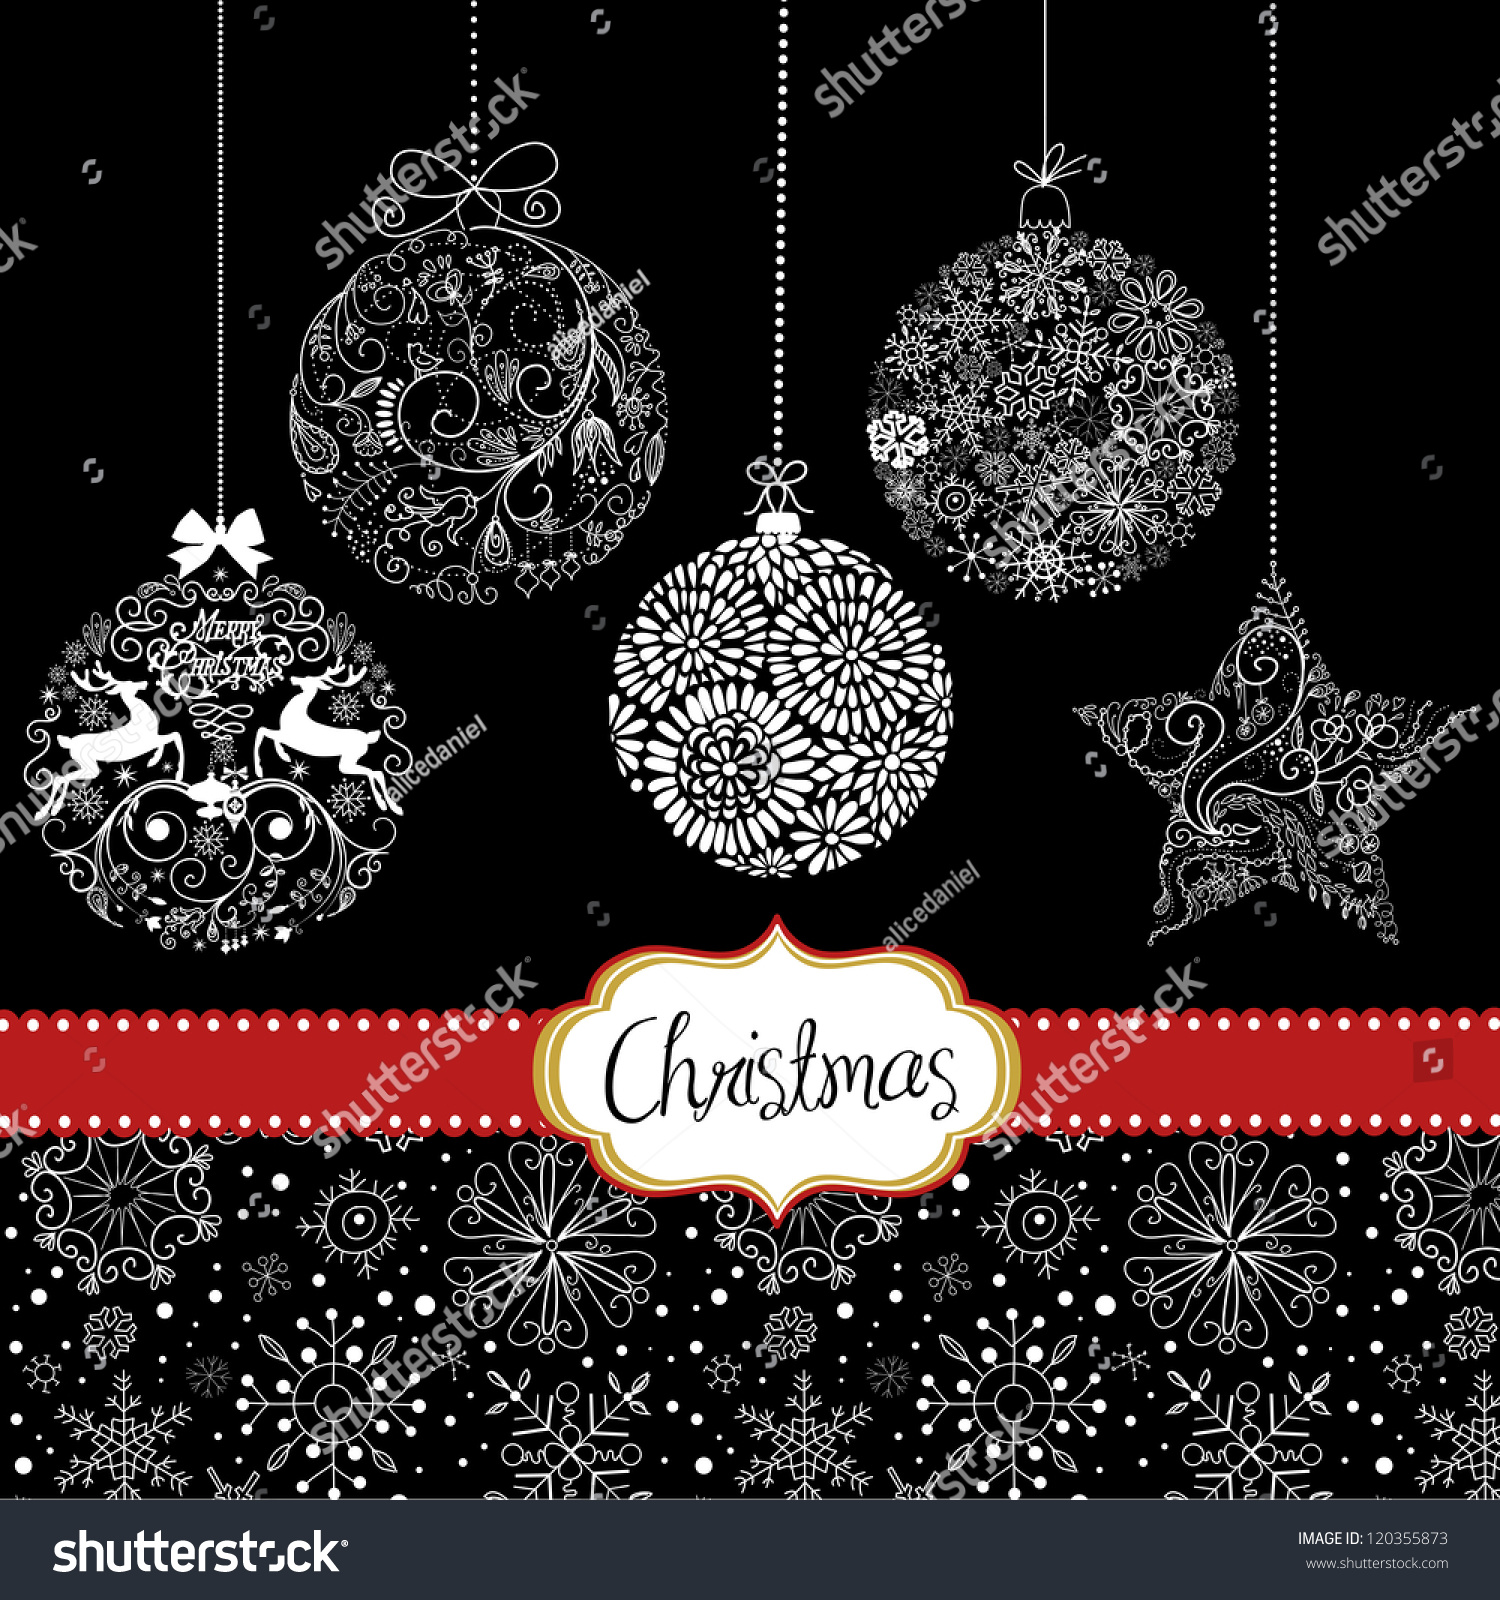 Black White Christmas Ornaments Card Template Stock Vector (2018 ...